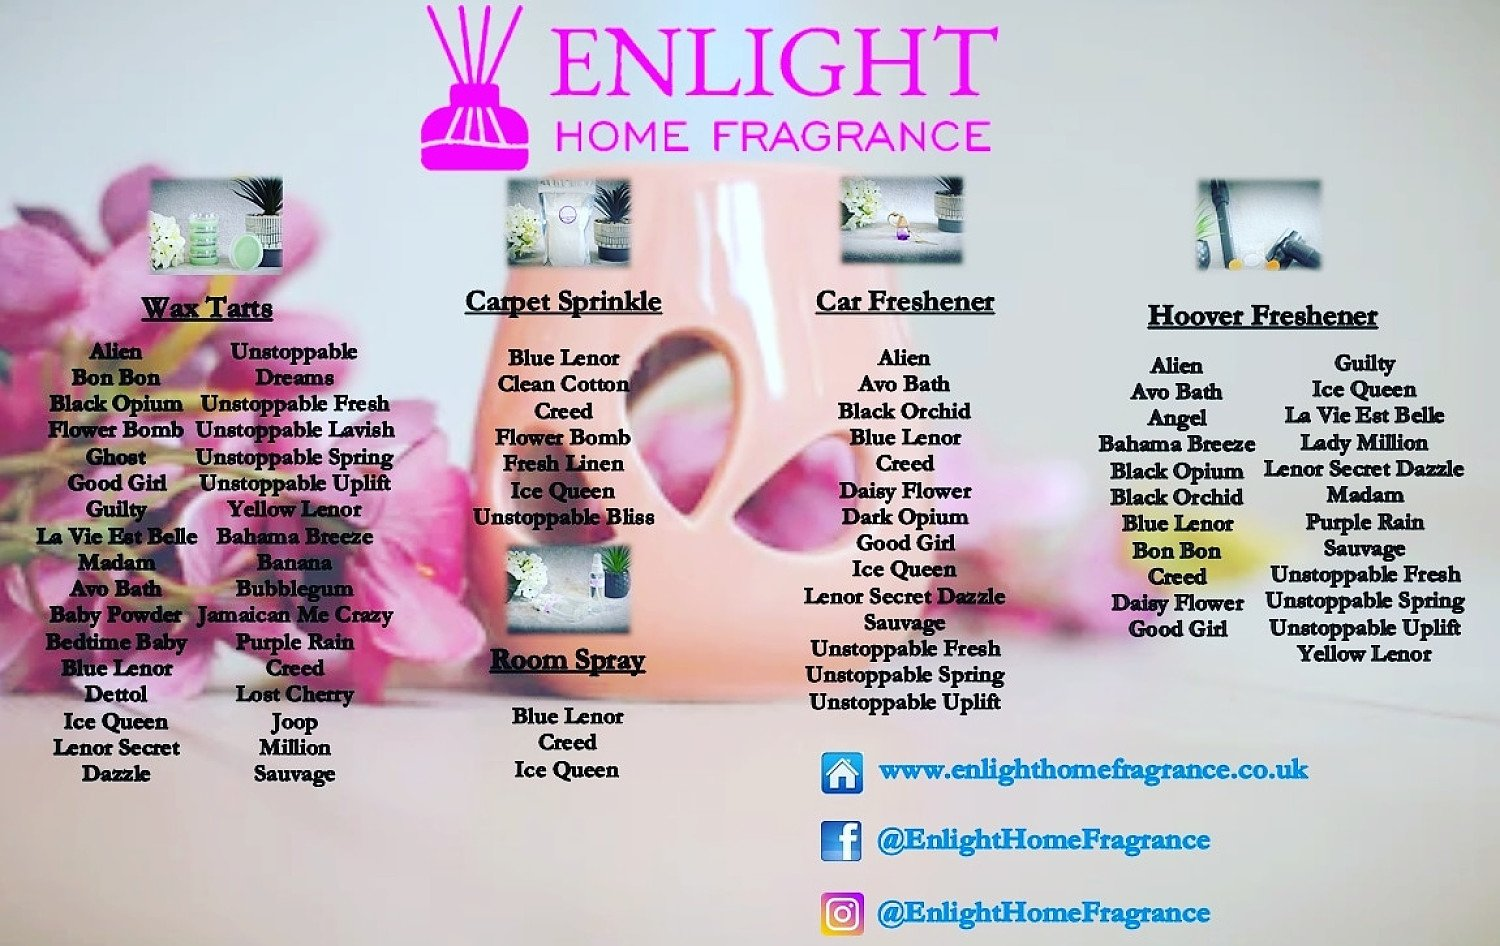 10% discount available at Enlight Home Fragrance